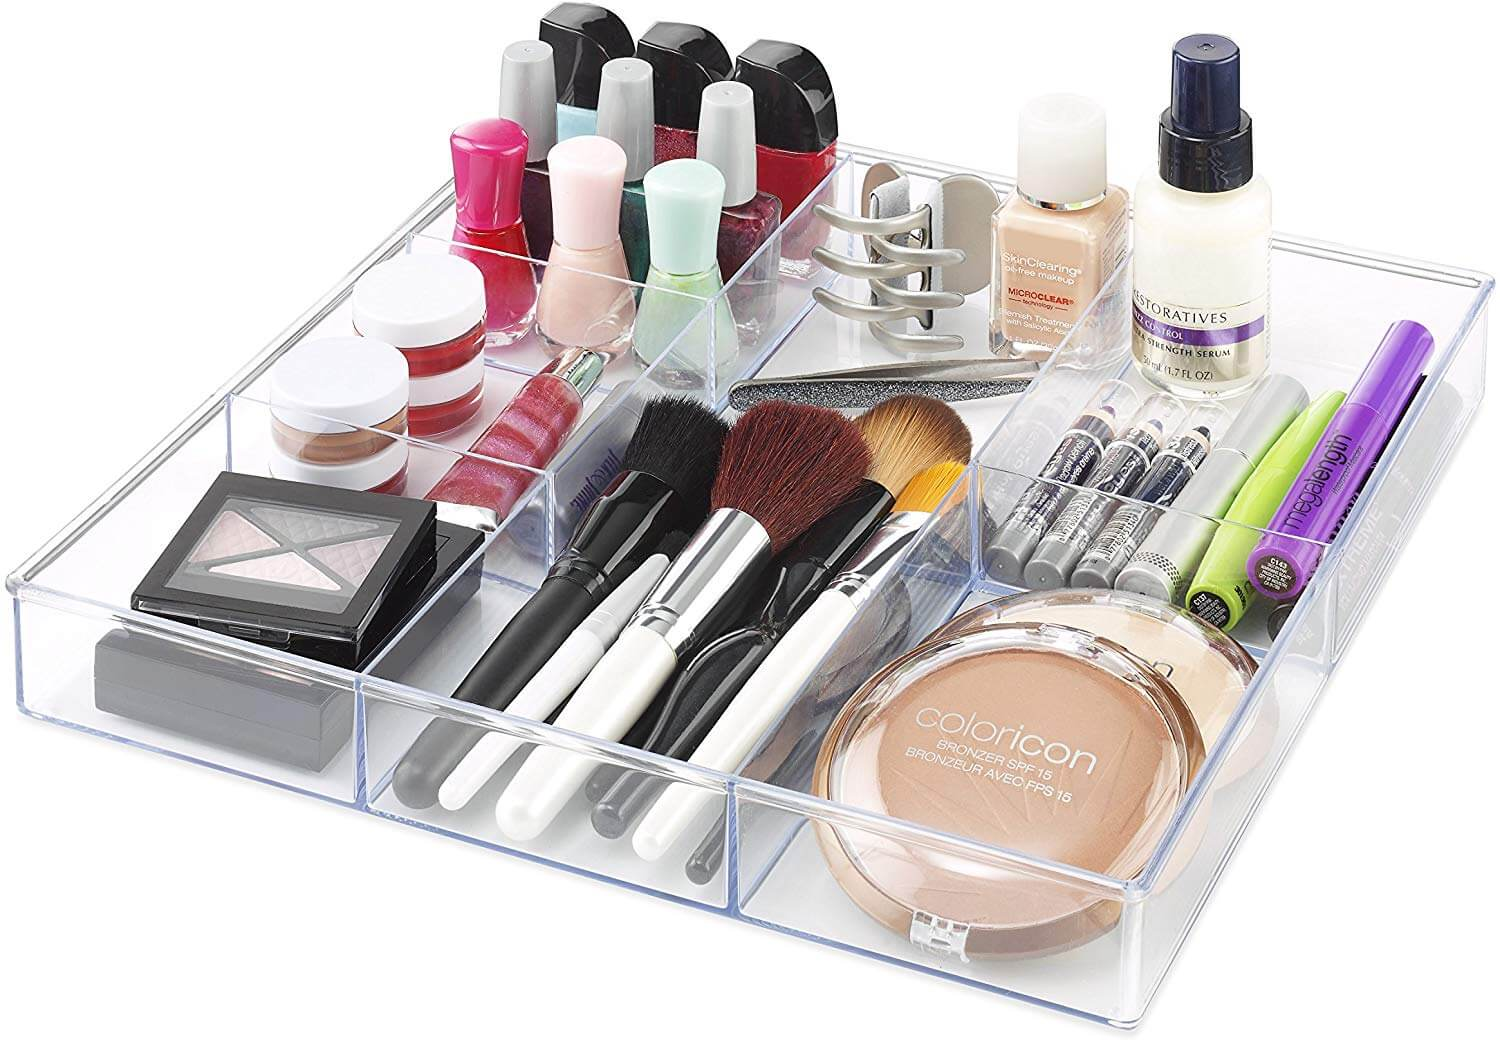 drawer divider box as an idea of how to get organized